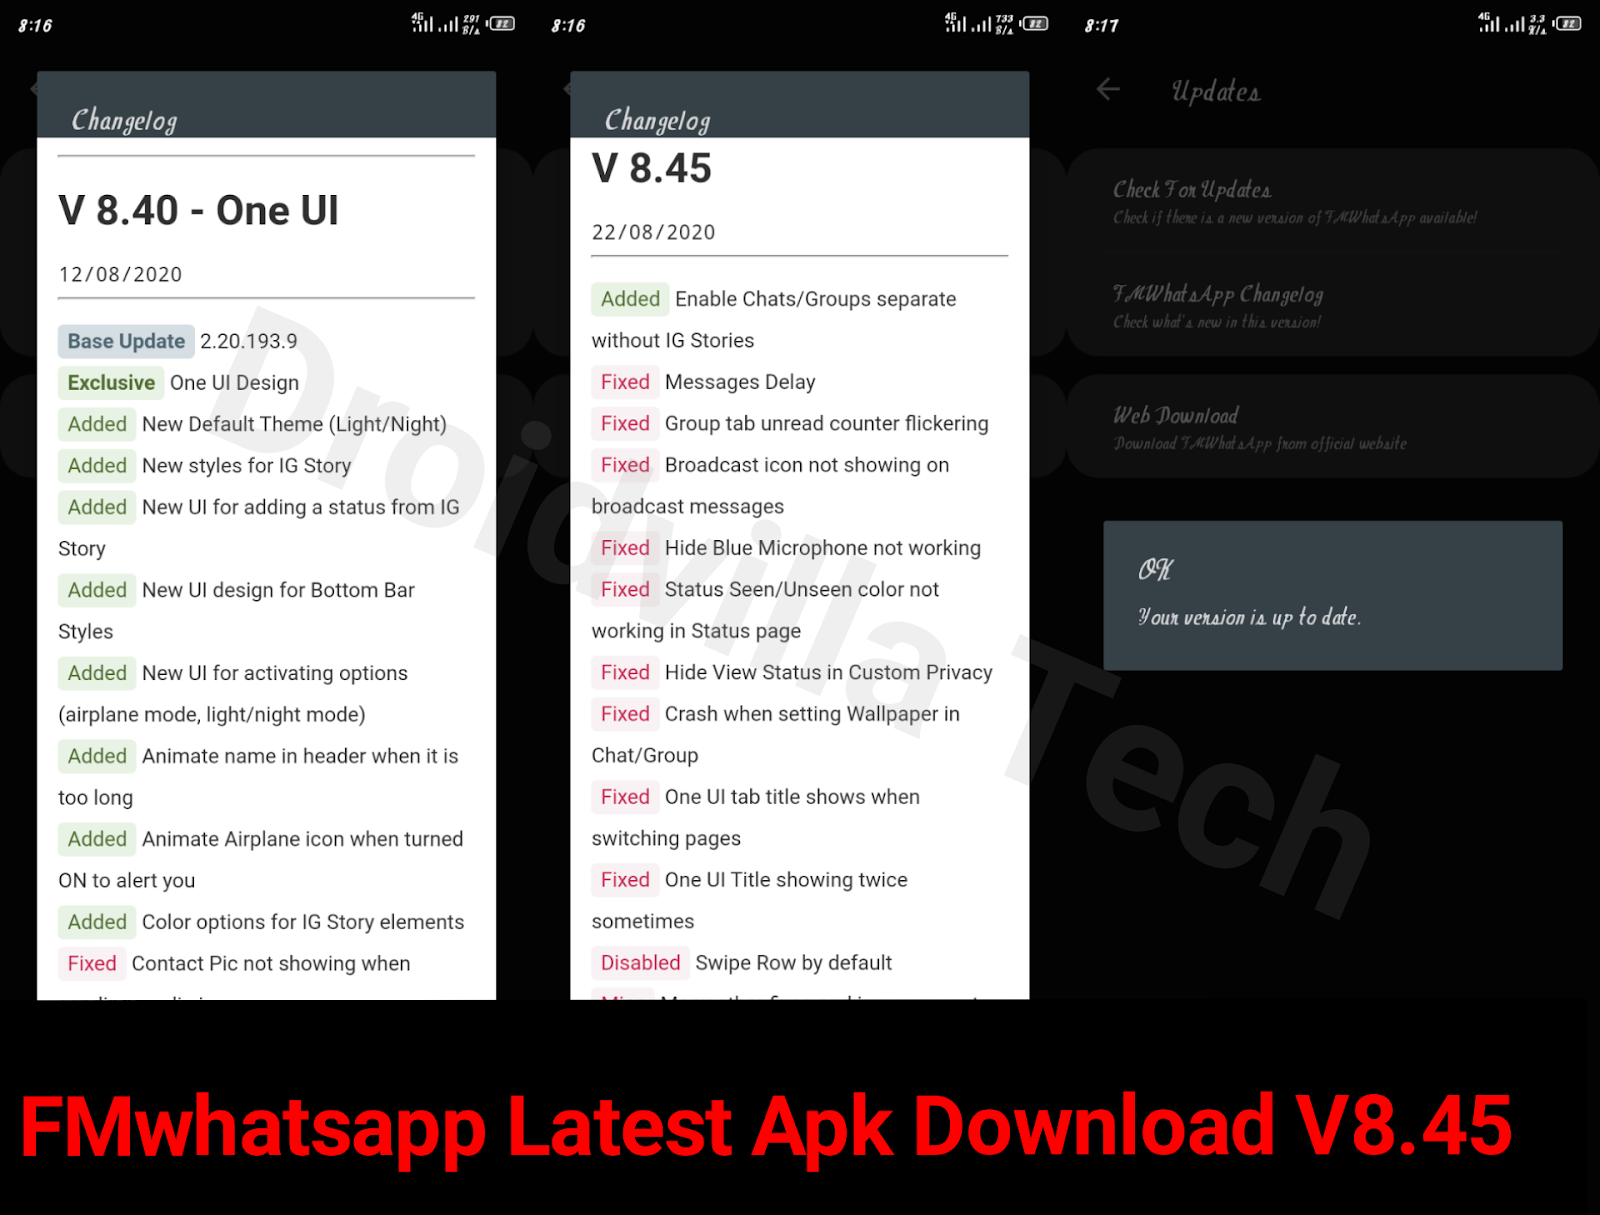 FMwhatsapp v8.45 latest download